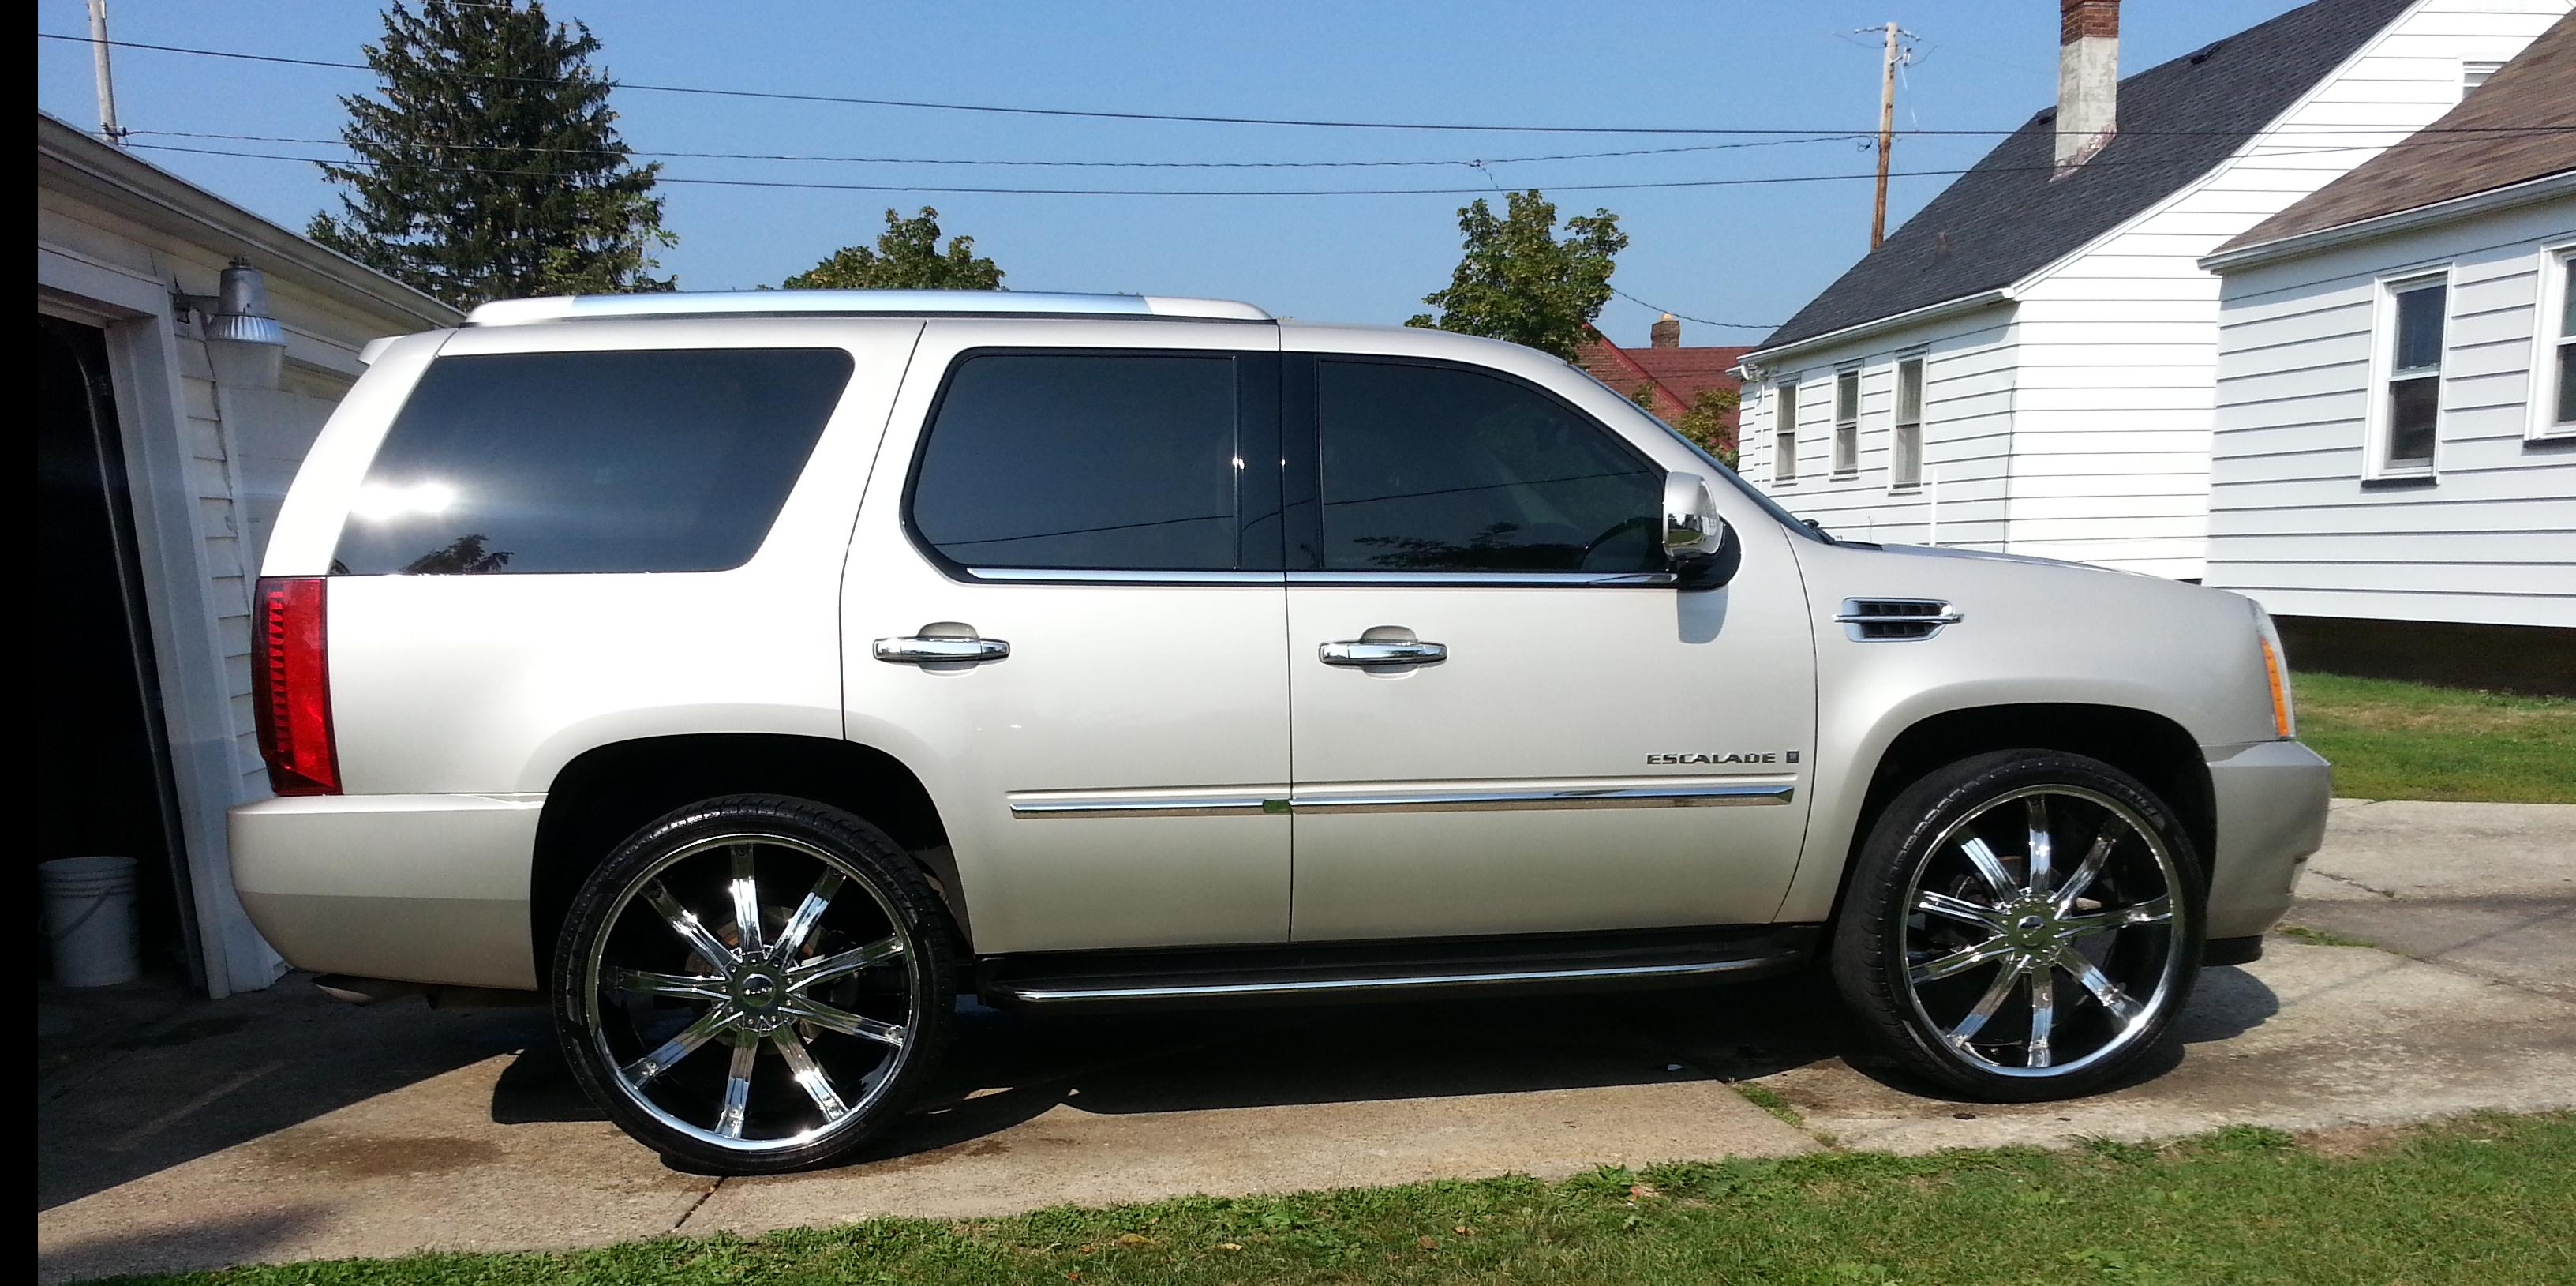 DJFITTED's 2007 Cadillac Escalade